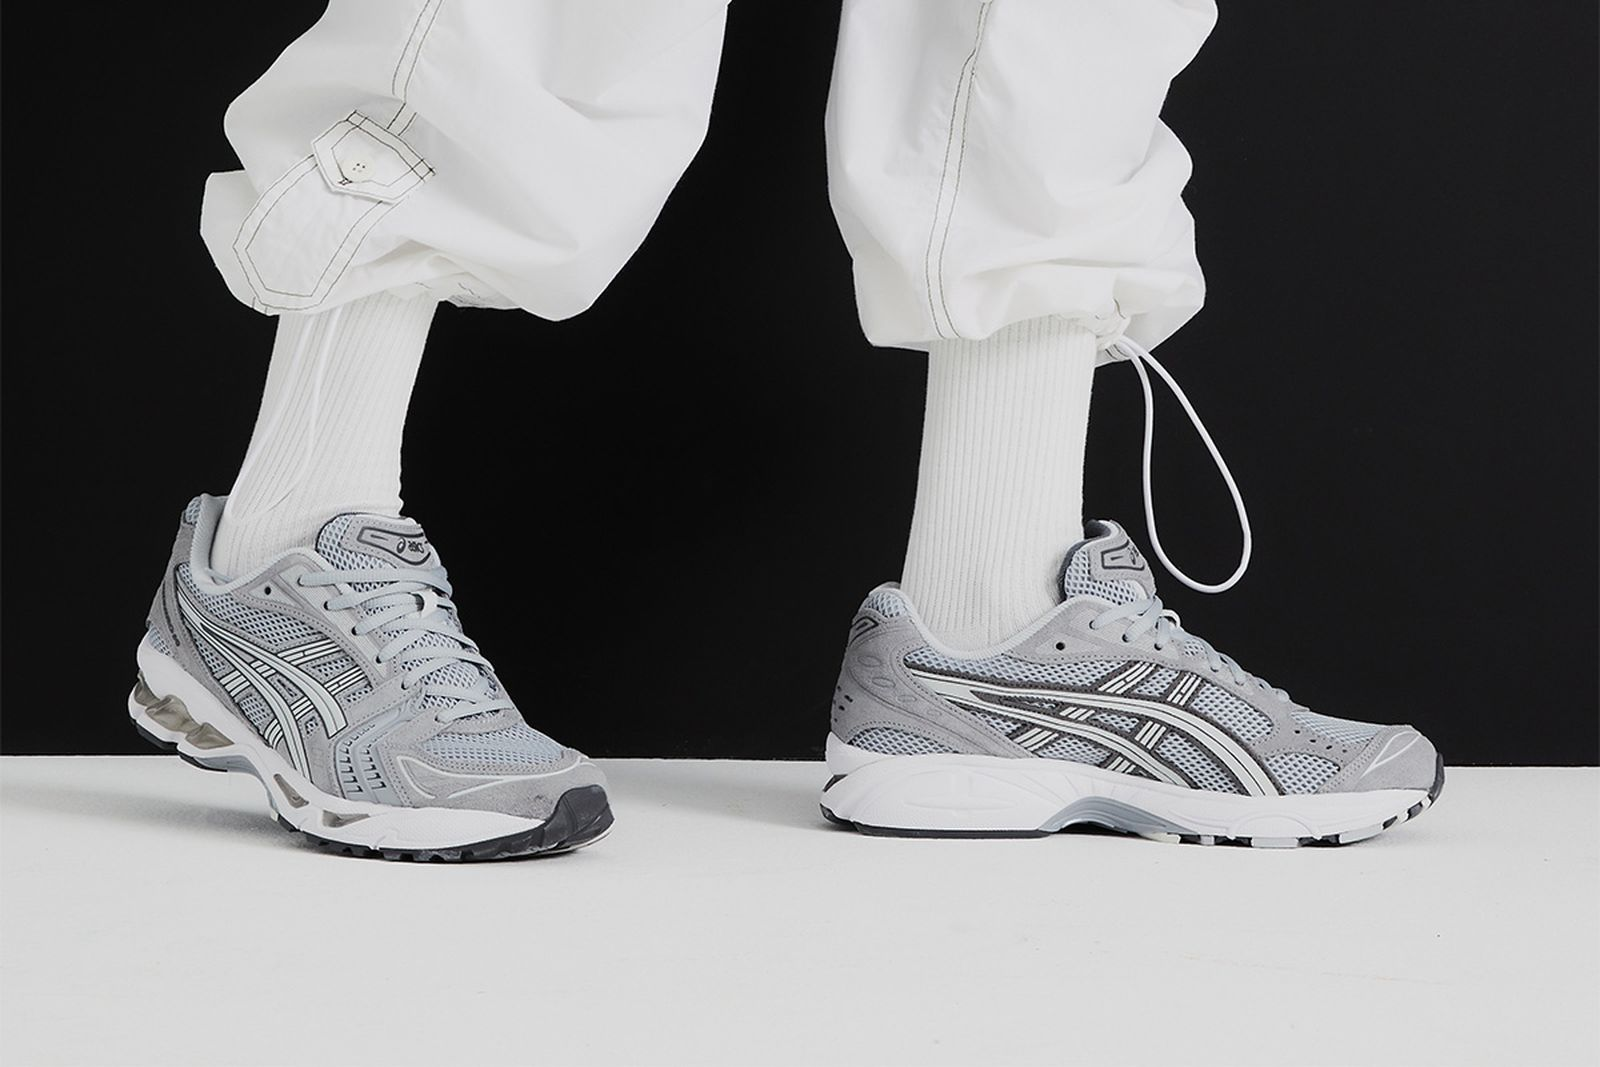 10 of the Best ASICS Sneakers to Wear in Spring 2021